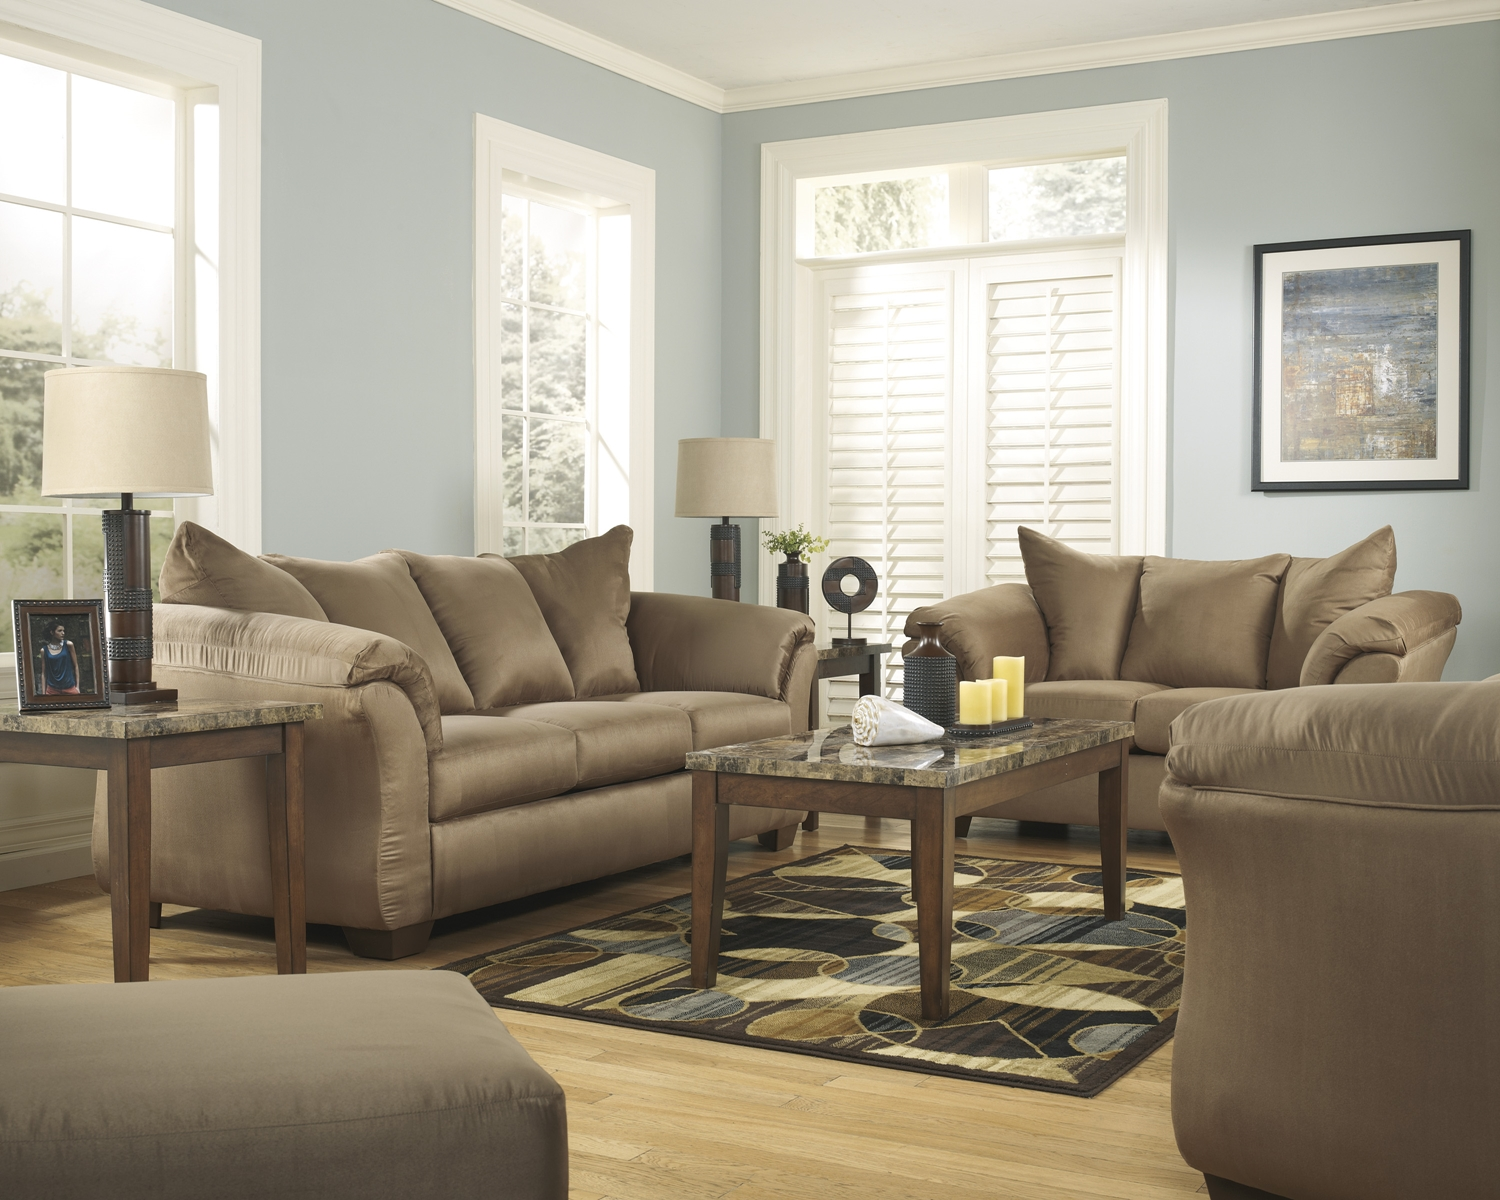 Modern camel tone plush upholstered sofa and loveseat set Upholstered sofas and loveseats